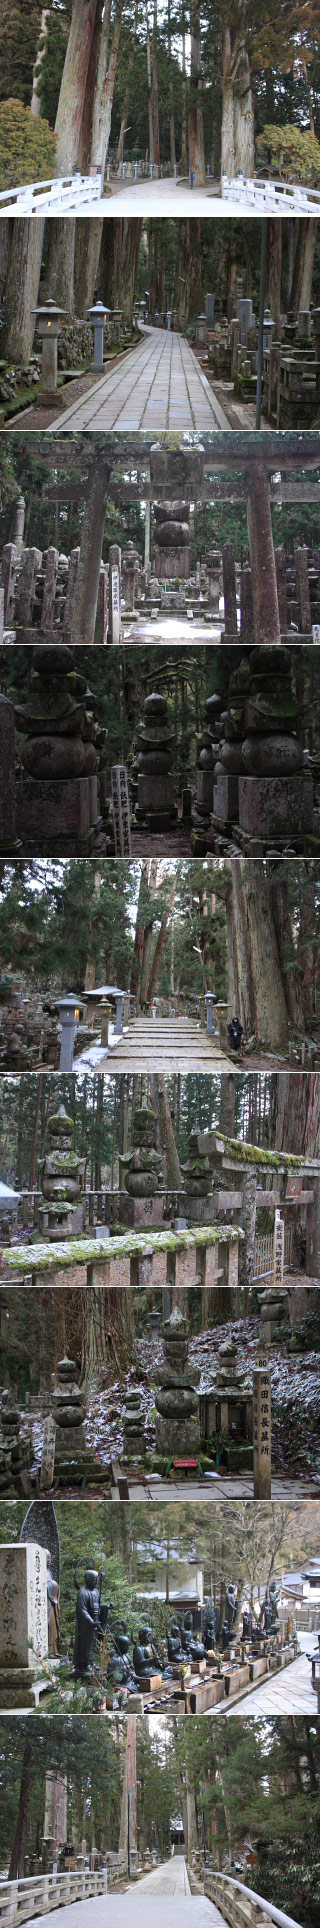 Mausoleum of Kobo Daishi